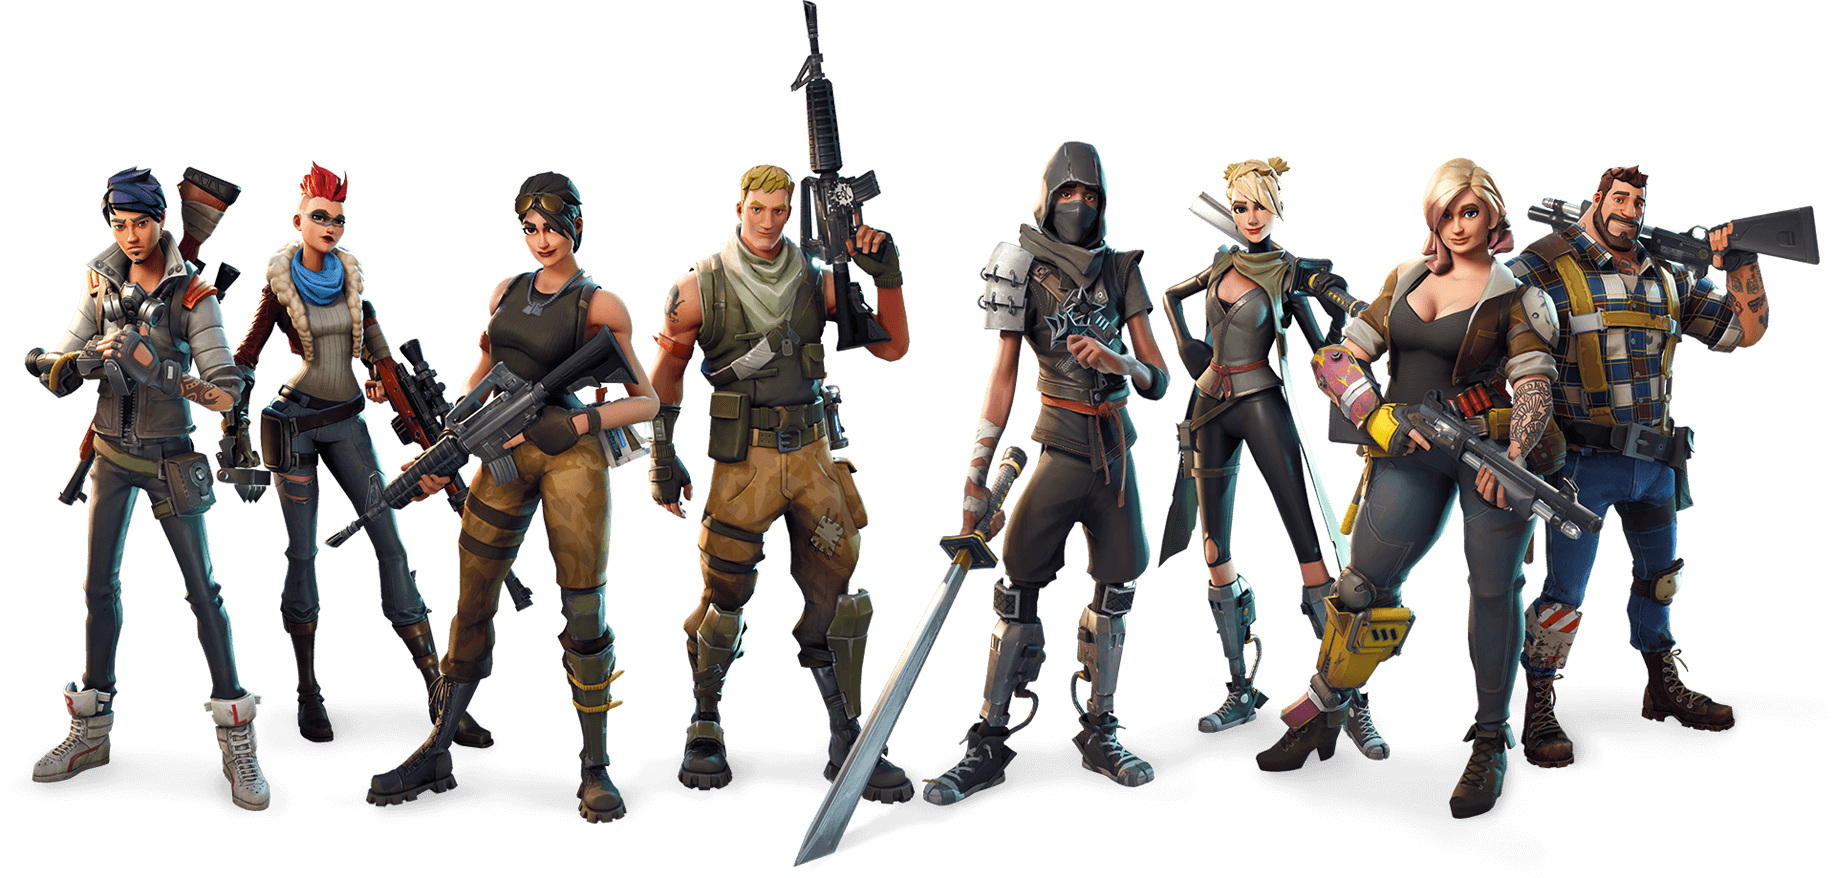 Fortnite Class Characters PNG Image - PurePNG